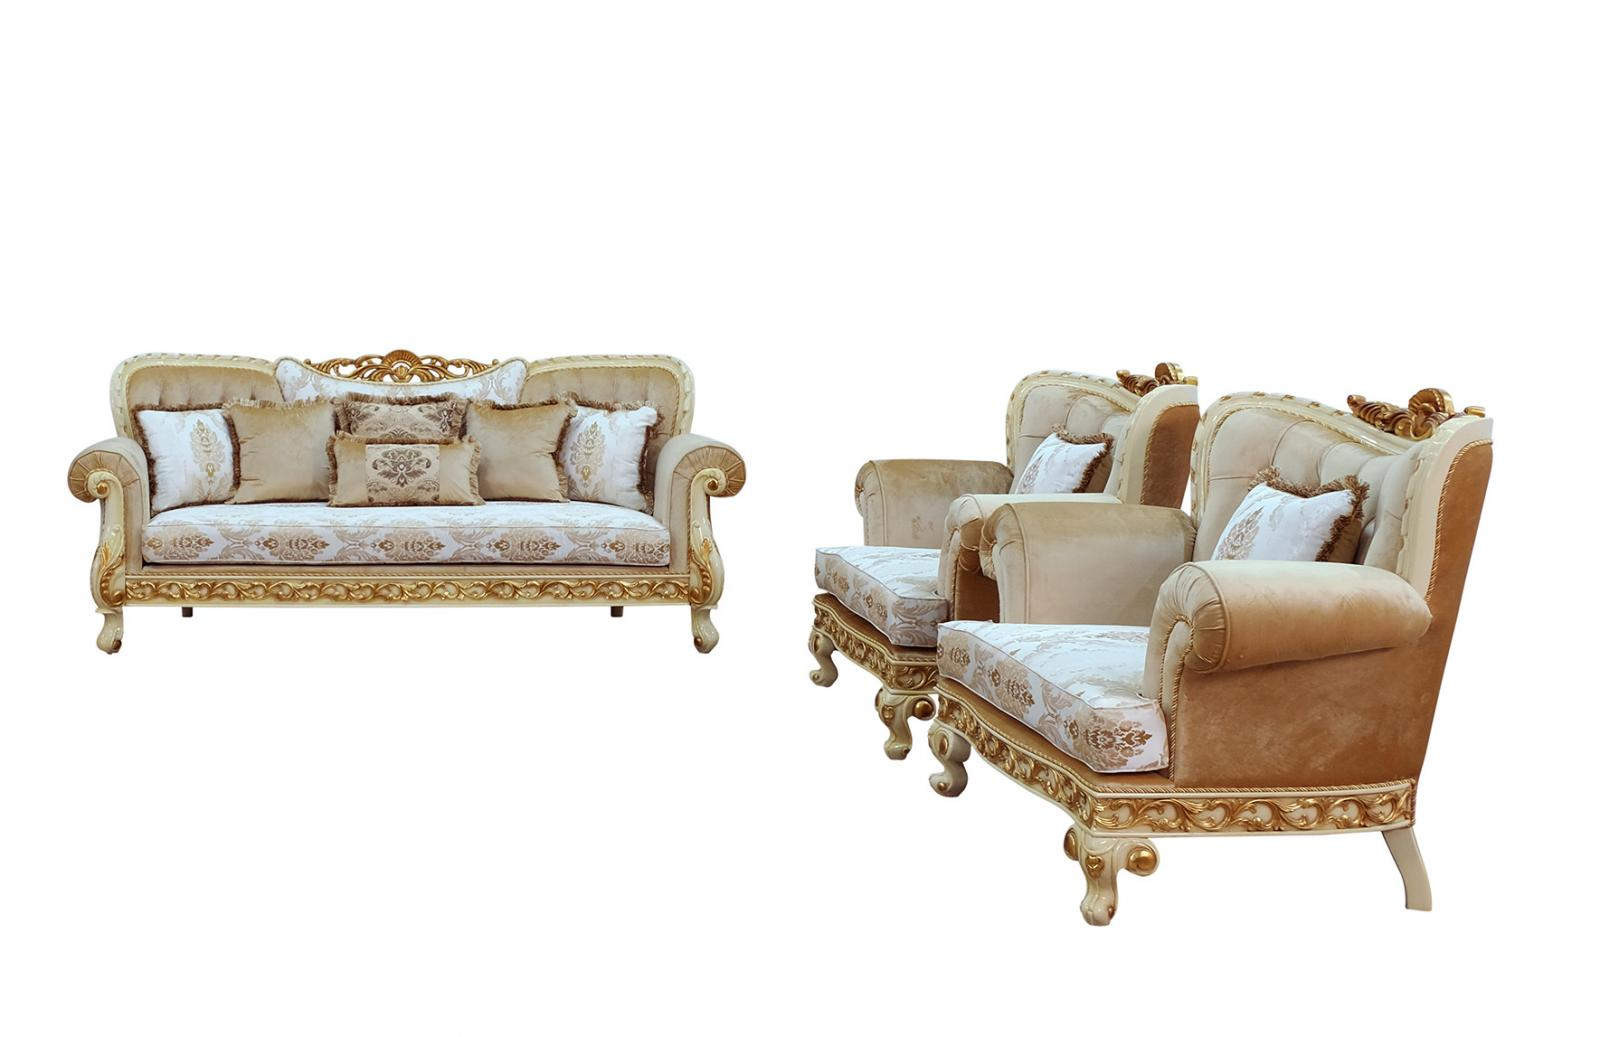 Classic  Traditional Gold  Sand  Off-White Wood  Solid Hardwood and Fabric Sofa Set EUROPEAN FURNITURE 40015-S-Set-3